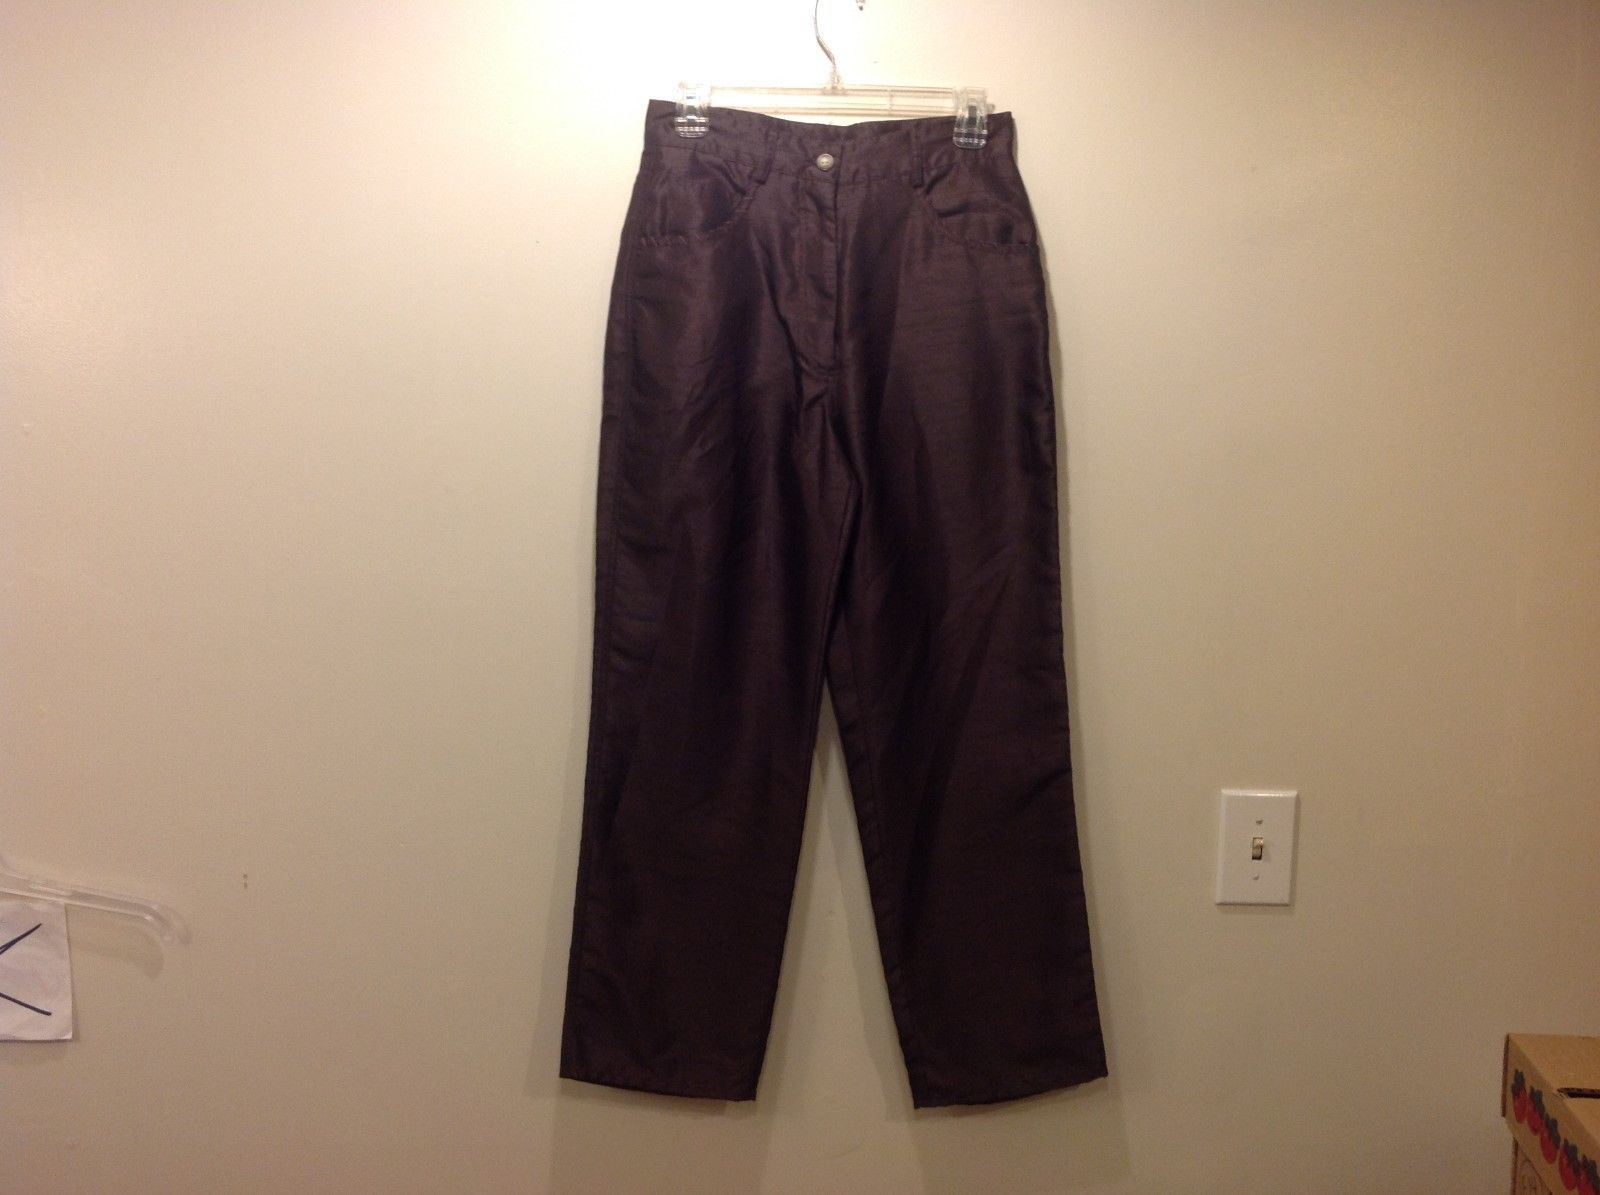 Tasha Polizzi Nice Cool Fancy Brown Dress Pants Sz 8